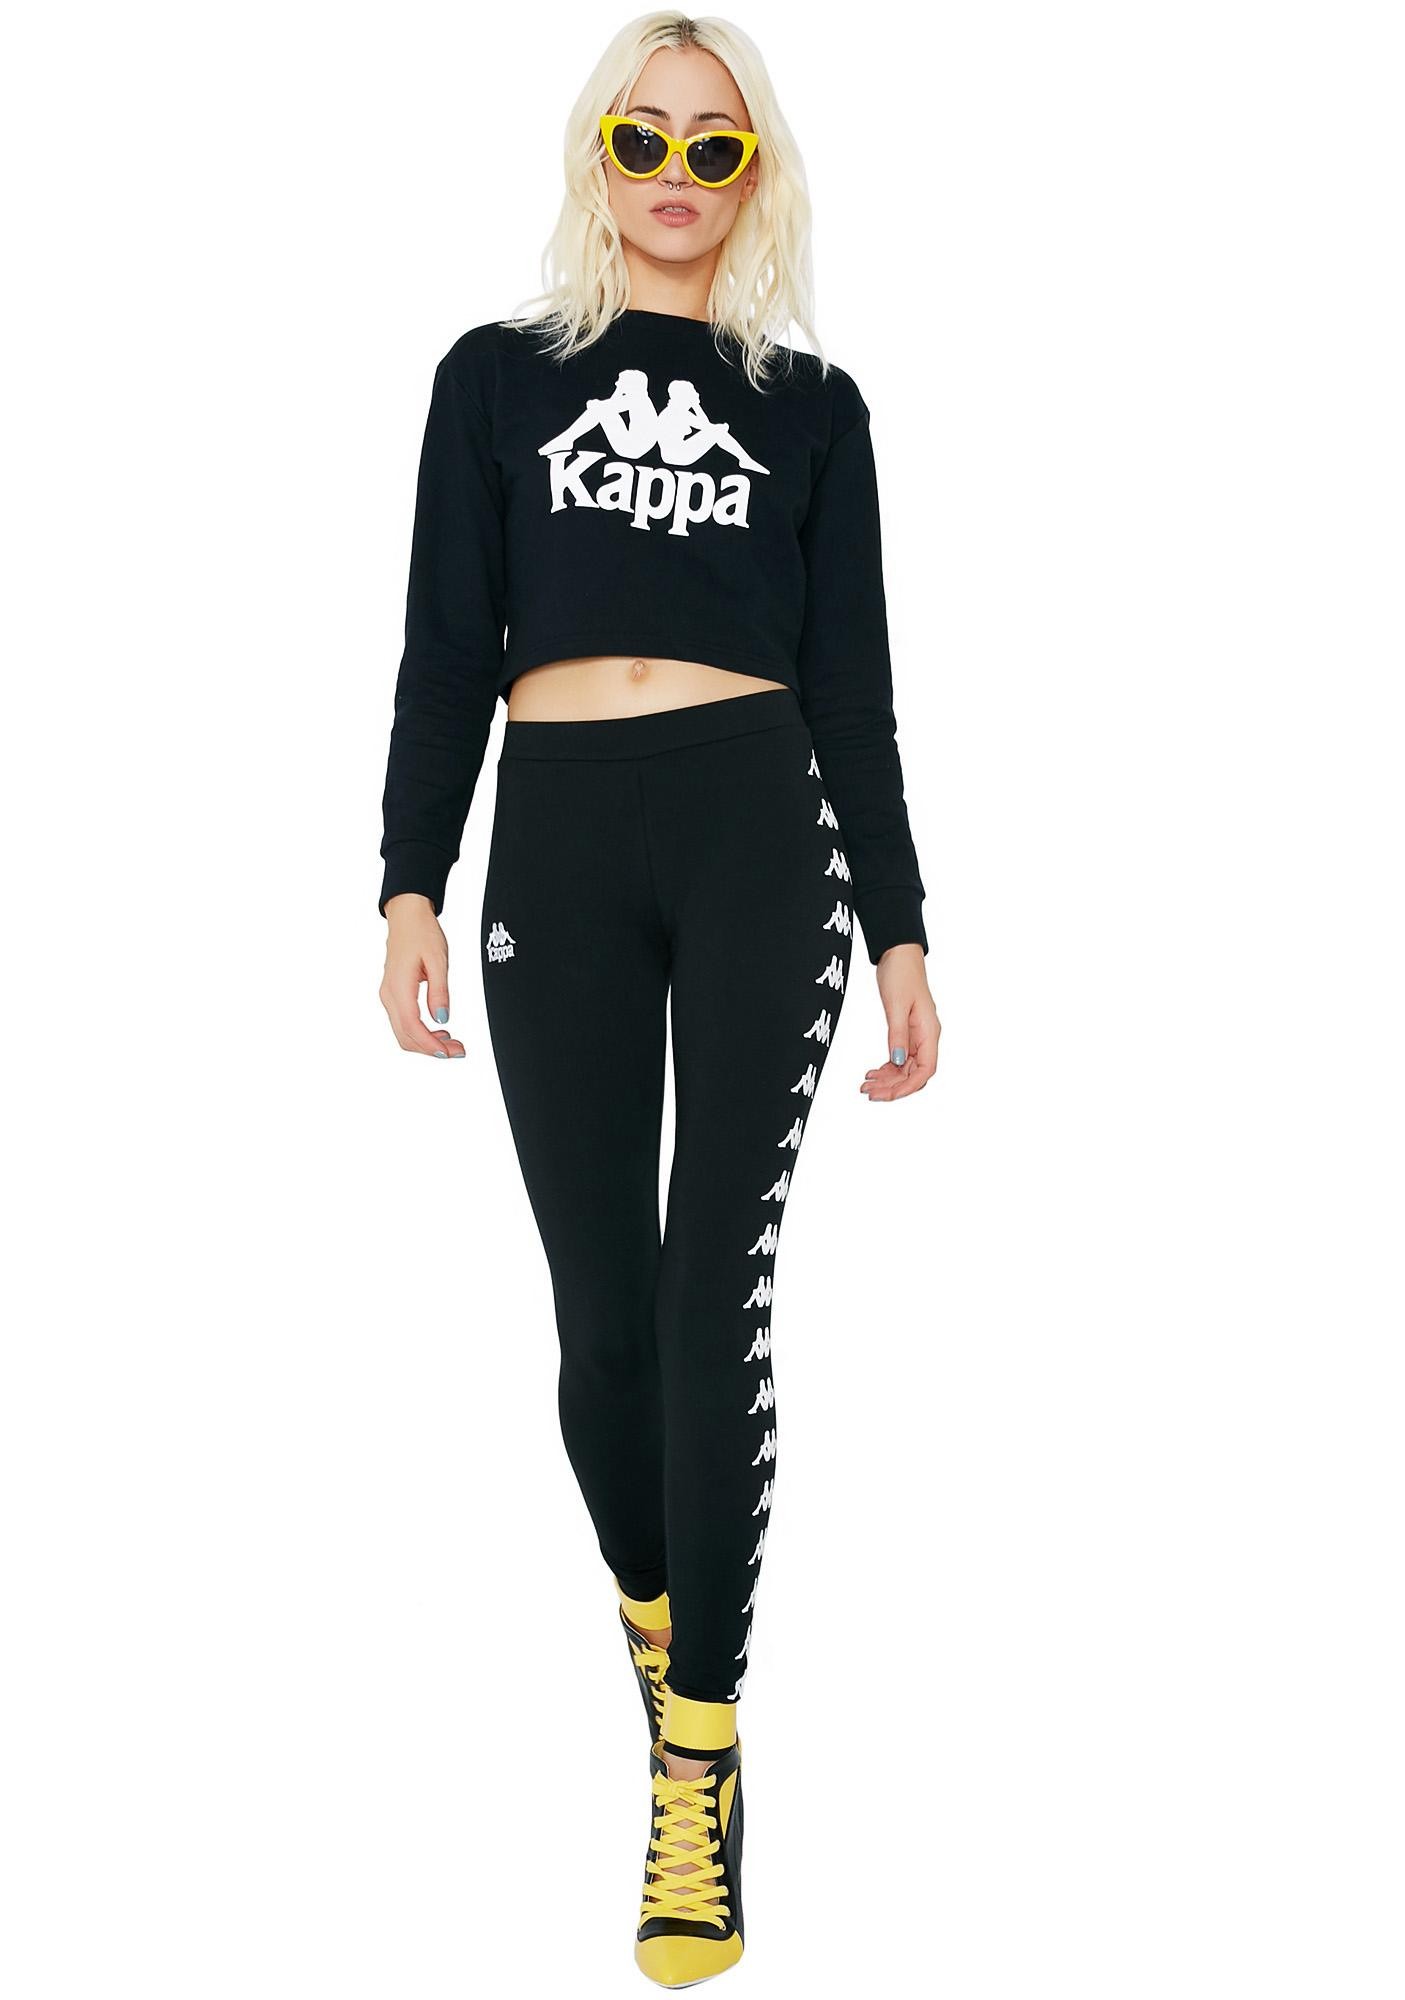 Kappa Authentic Skin Fit Leggings